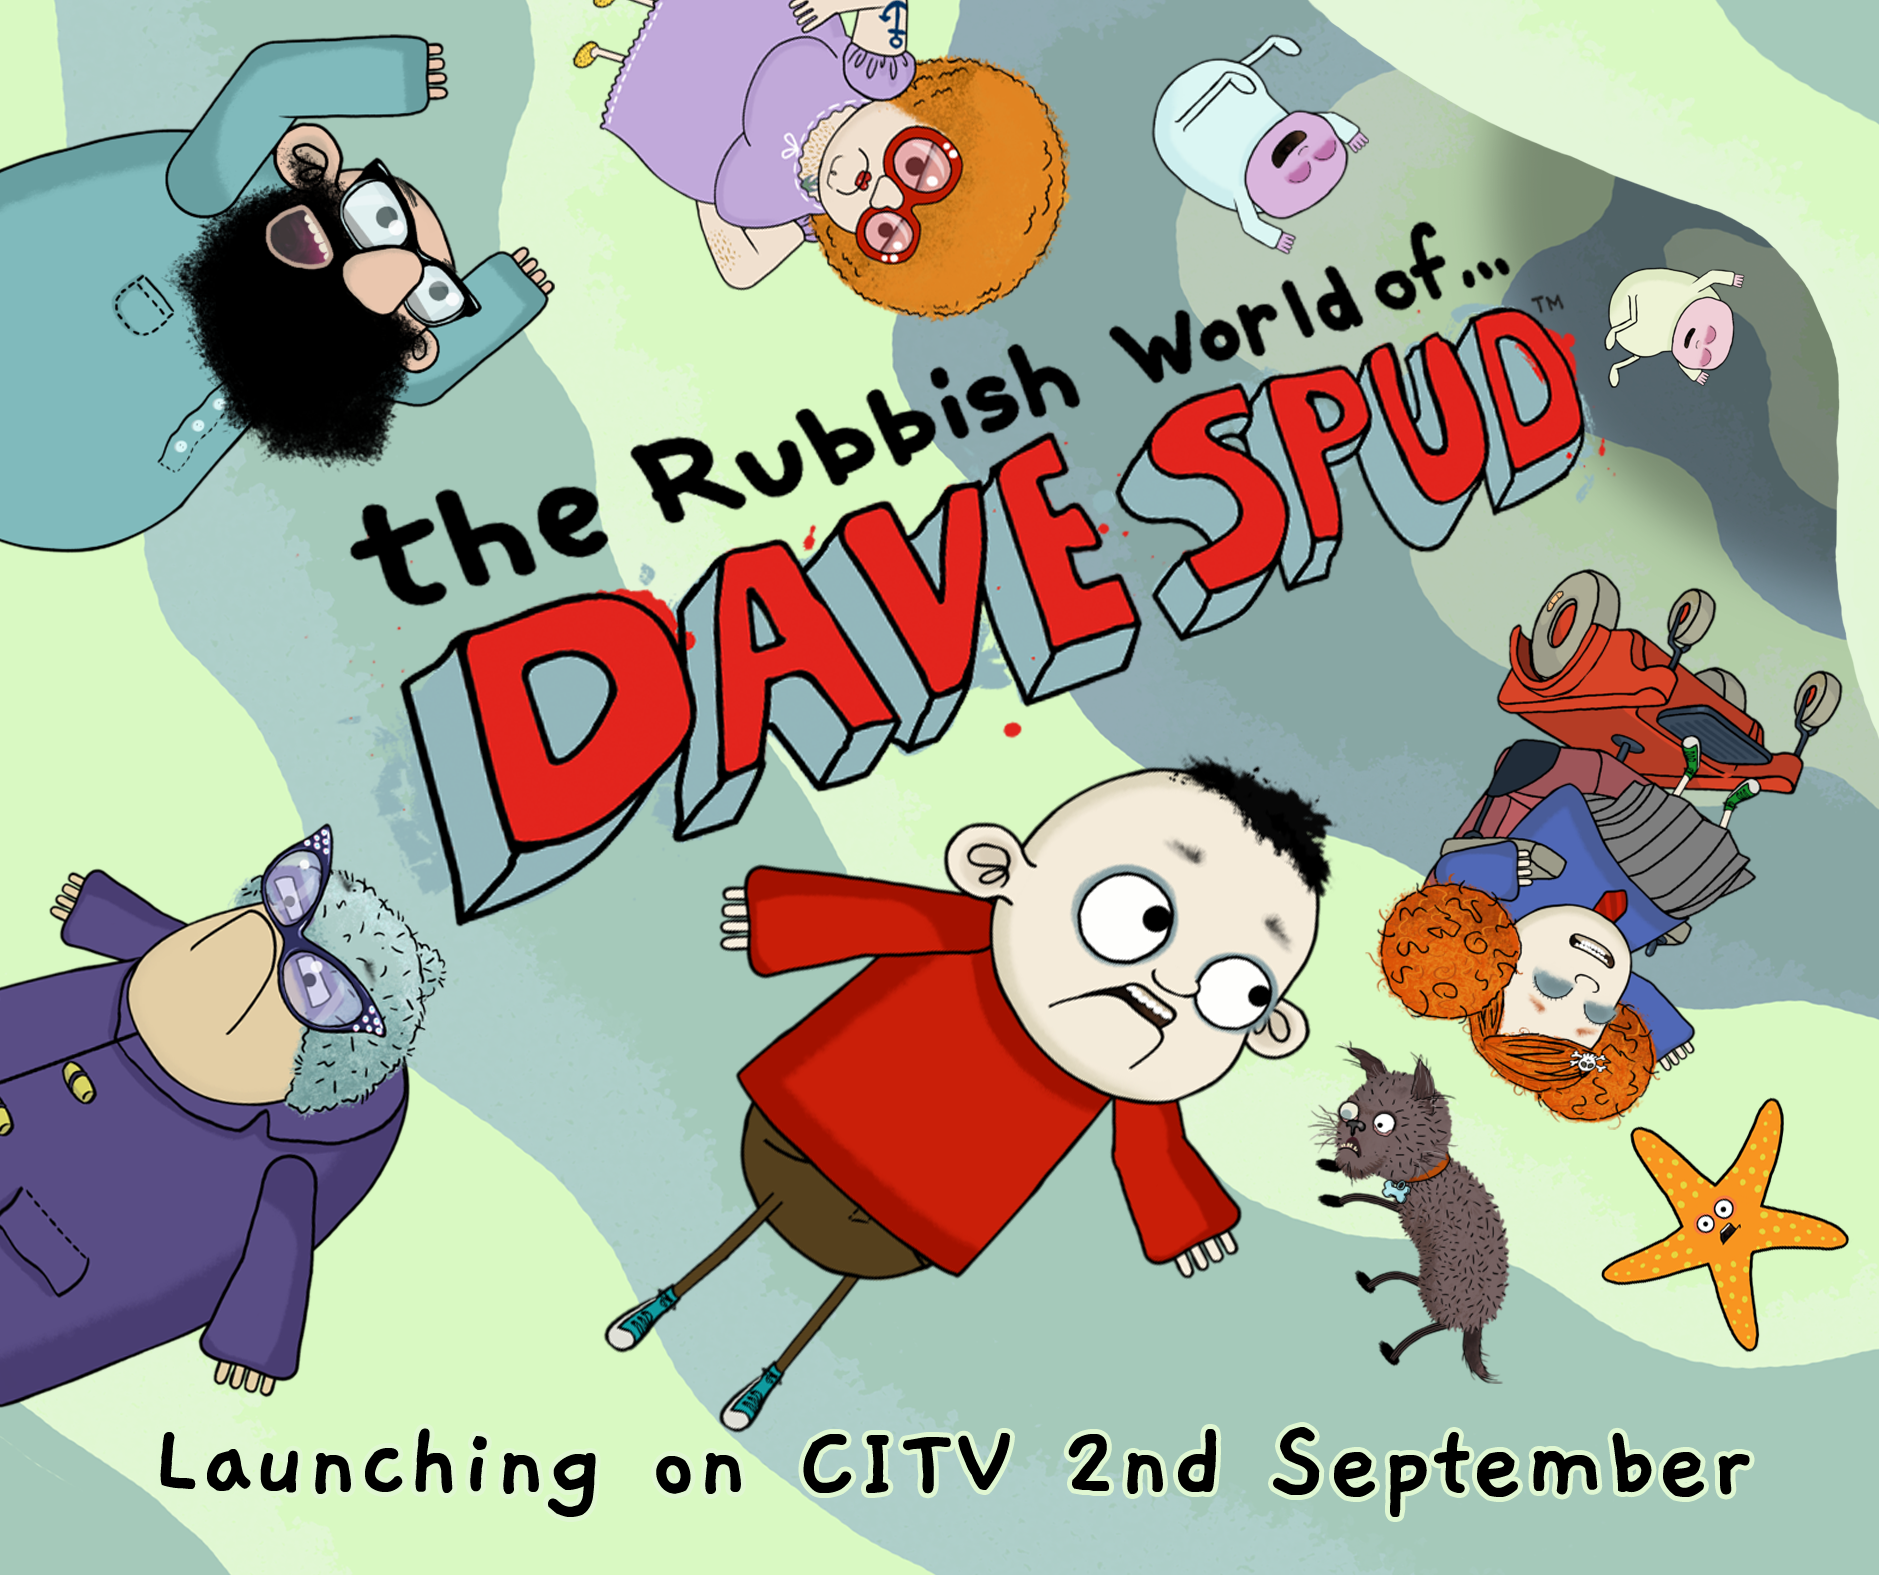 David Holt in The Rubbish World of Dave Spud